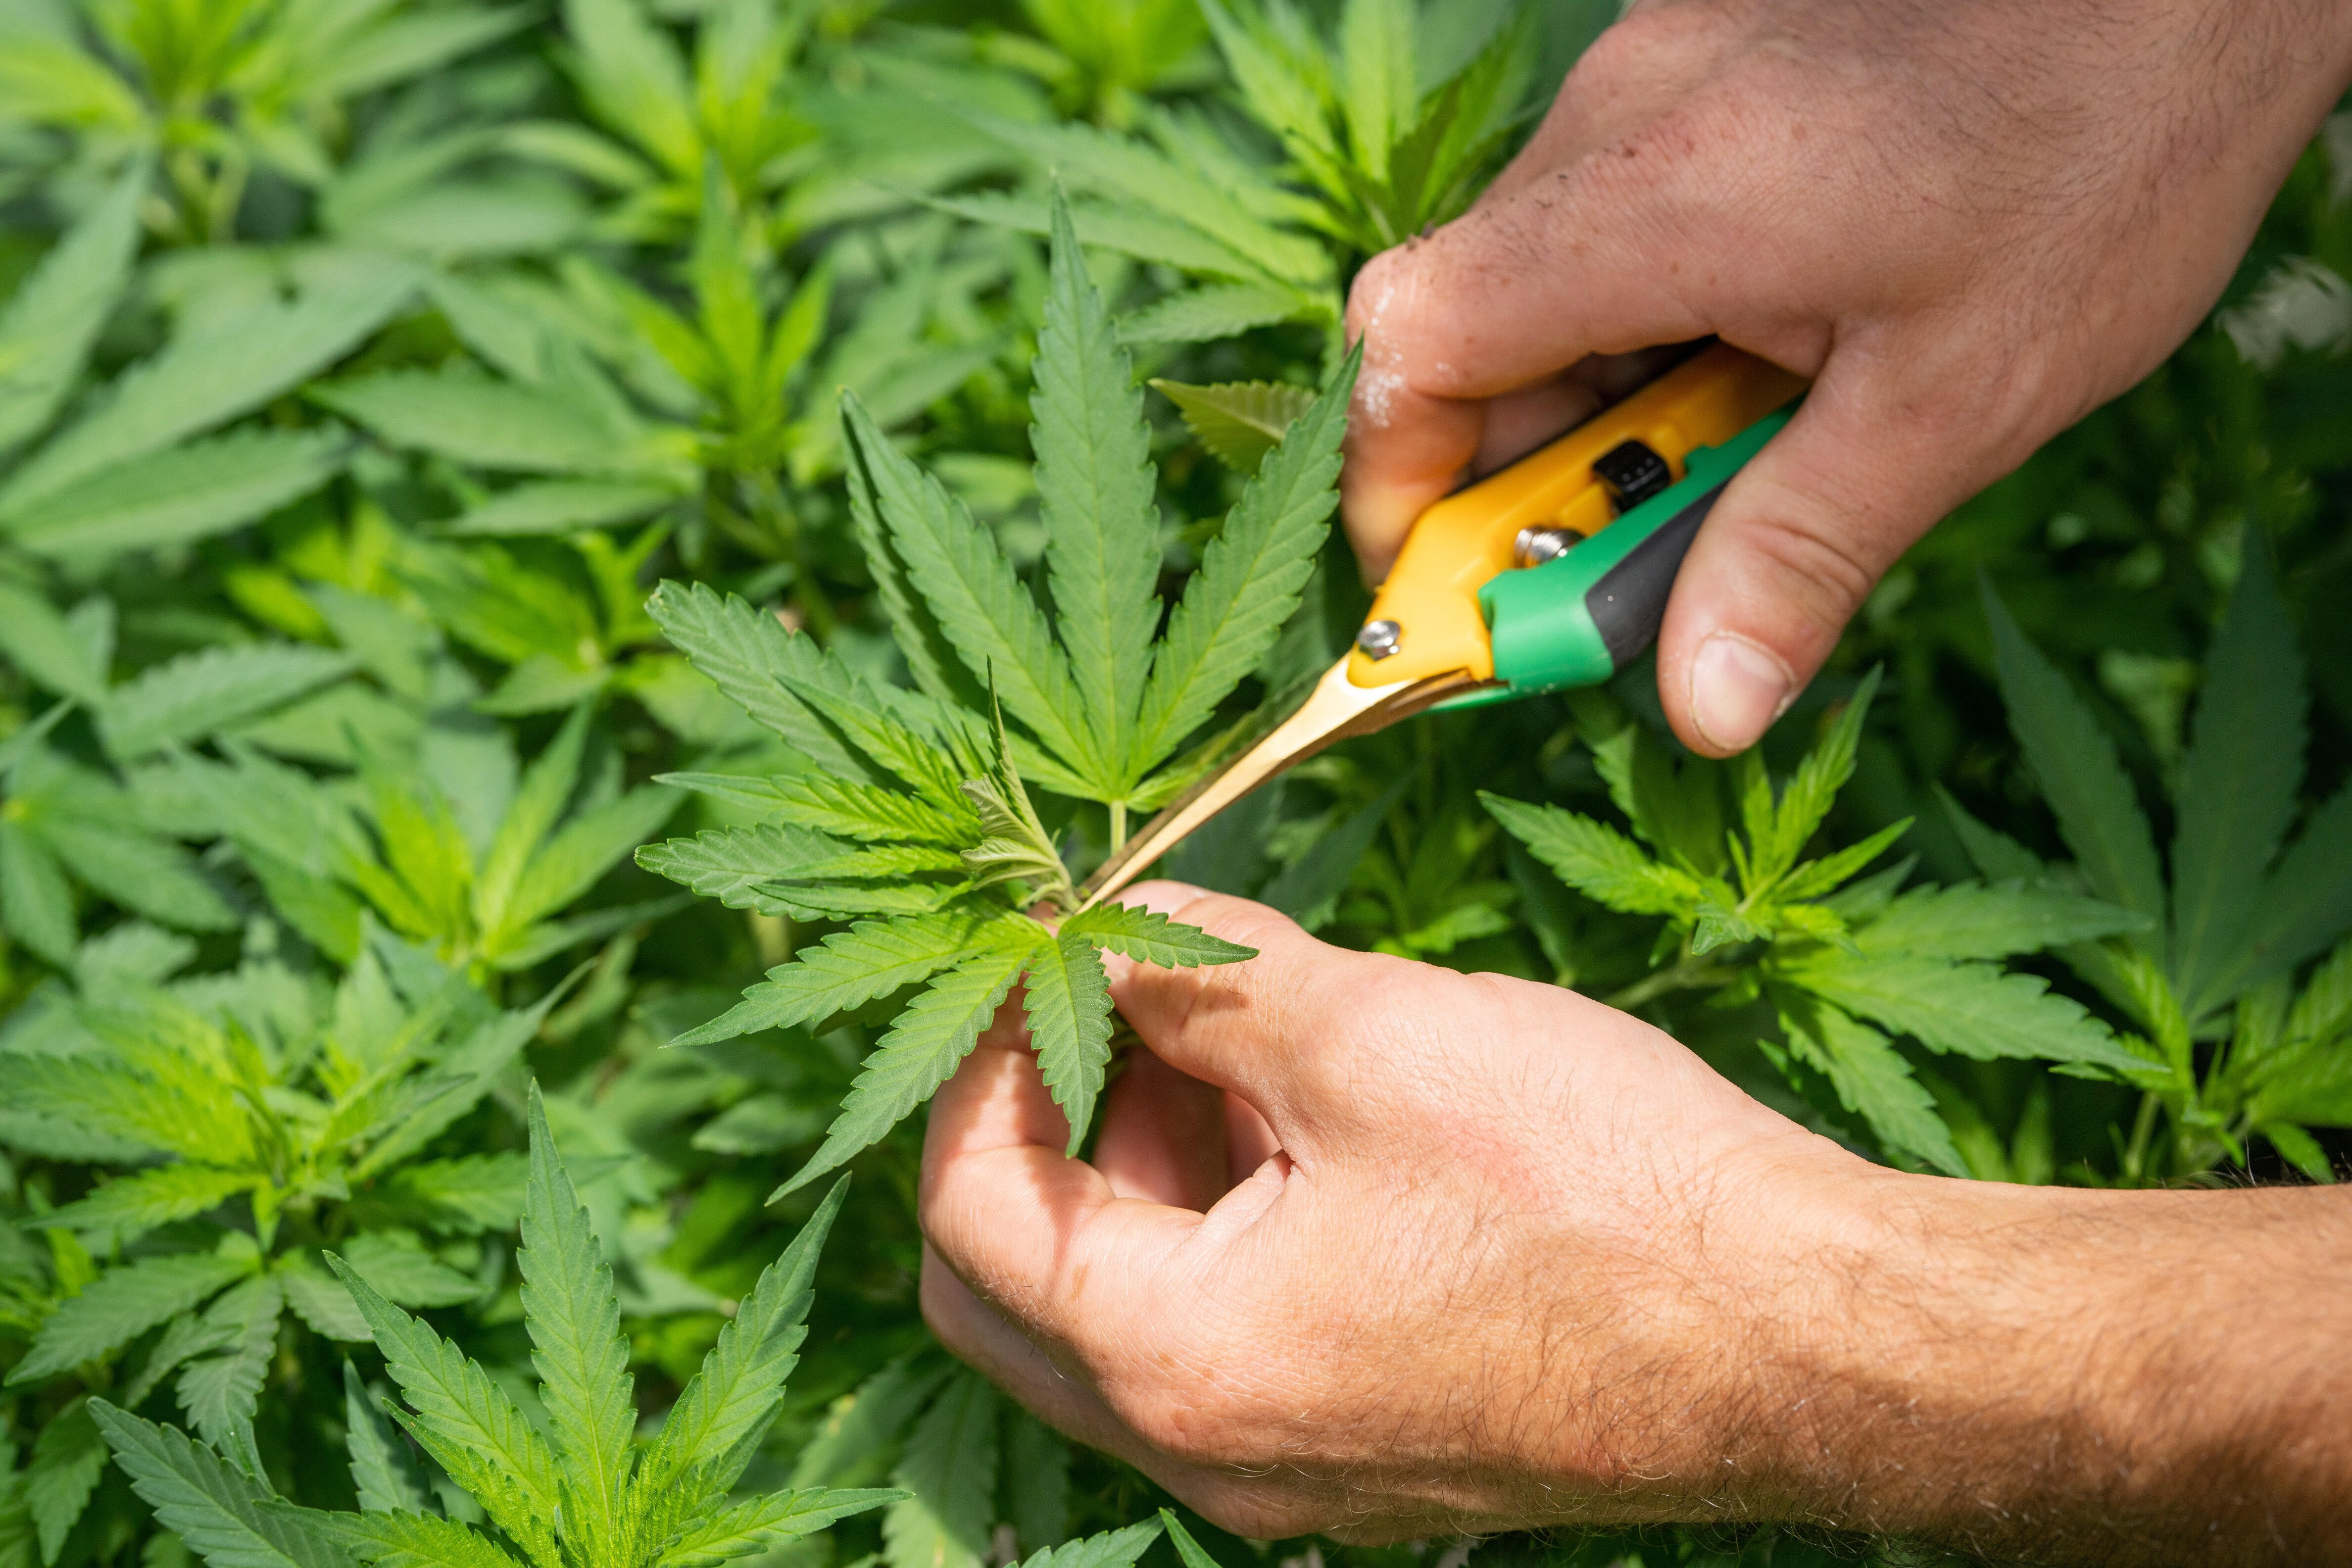 Top 5 Things to do with your bud trimmings